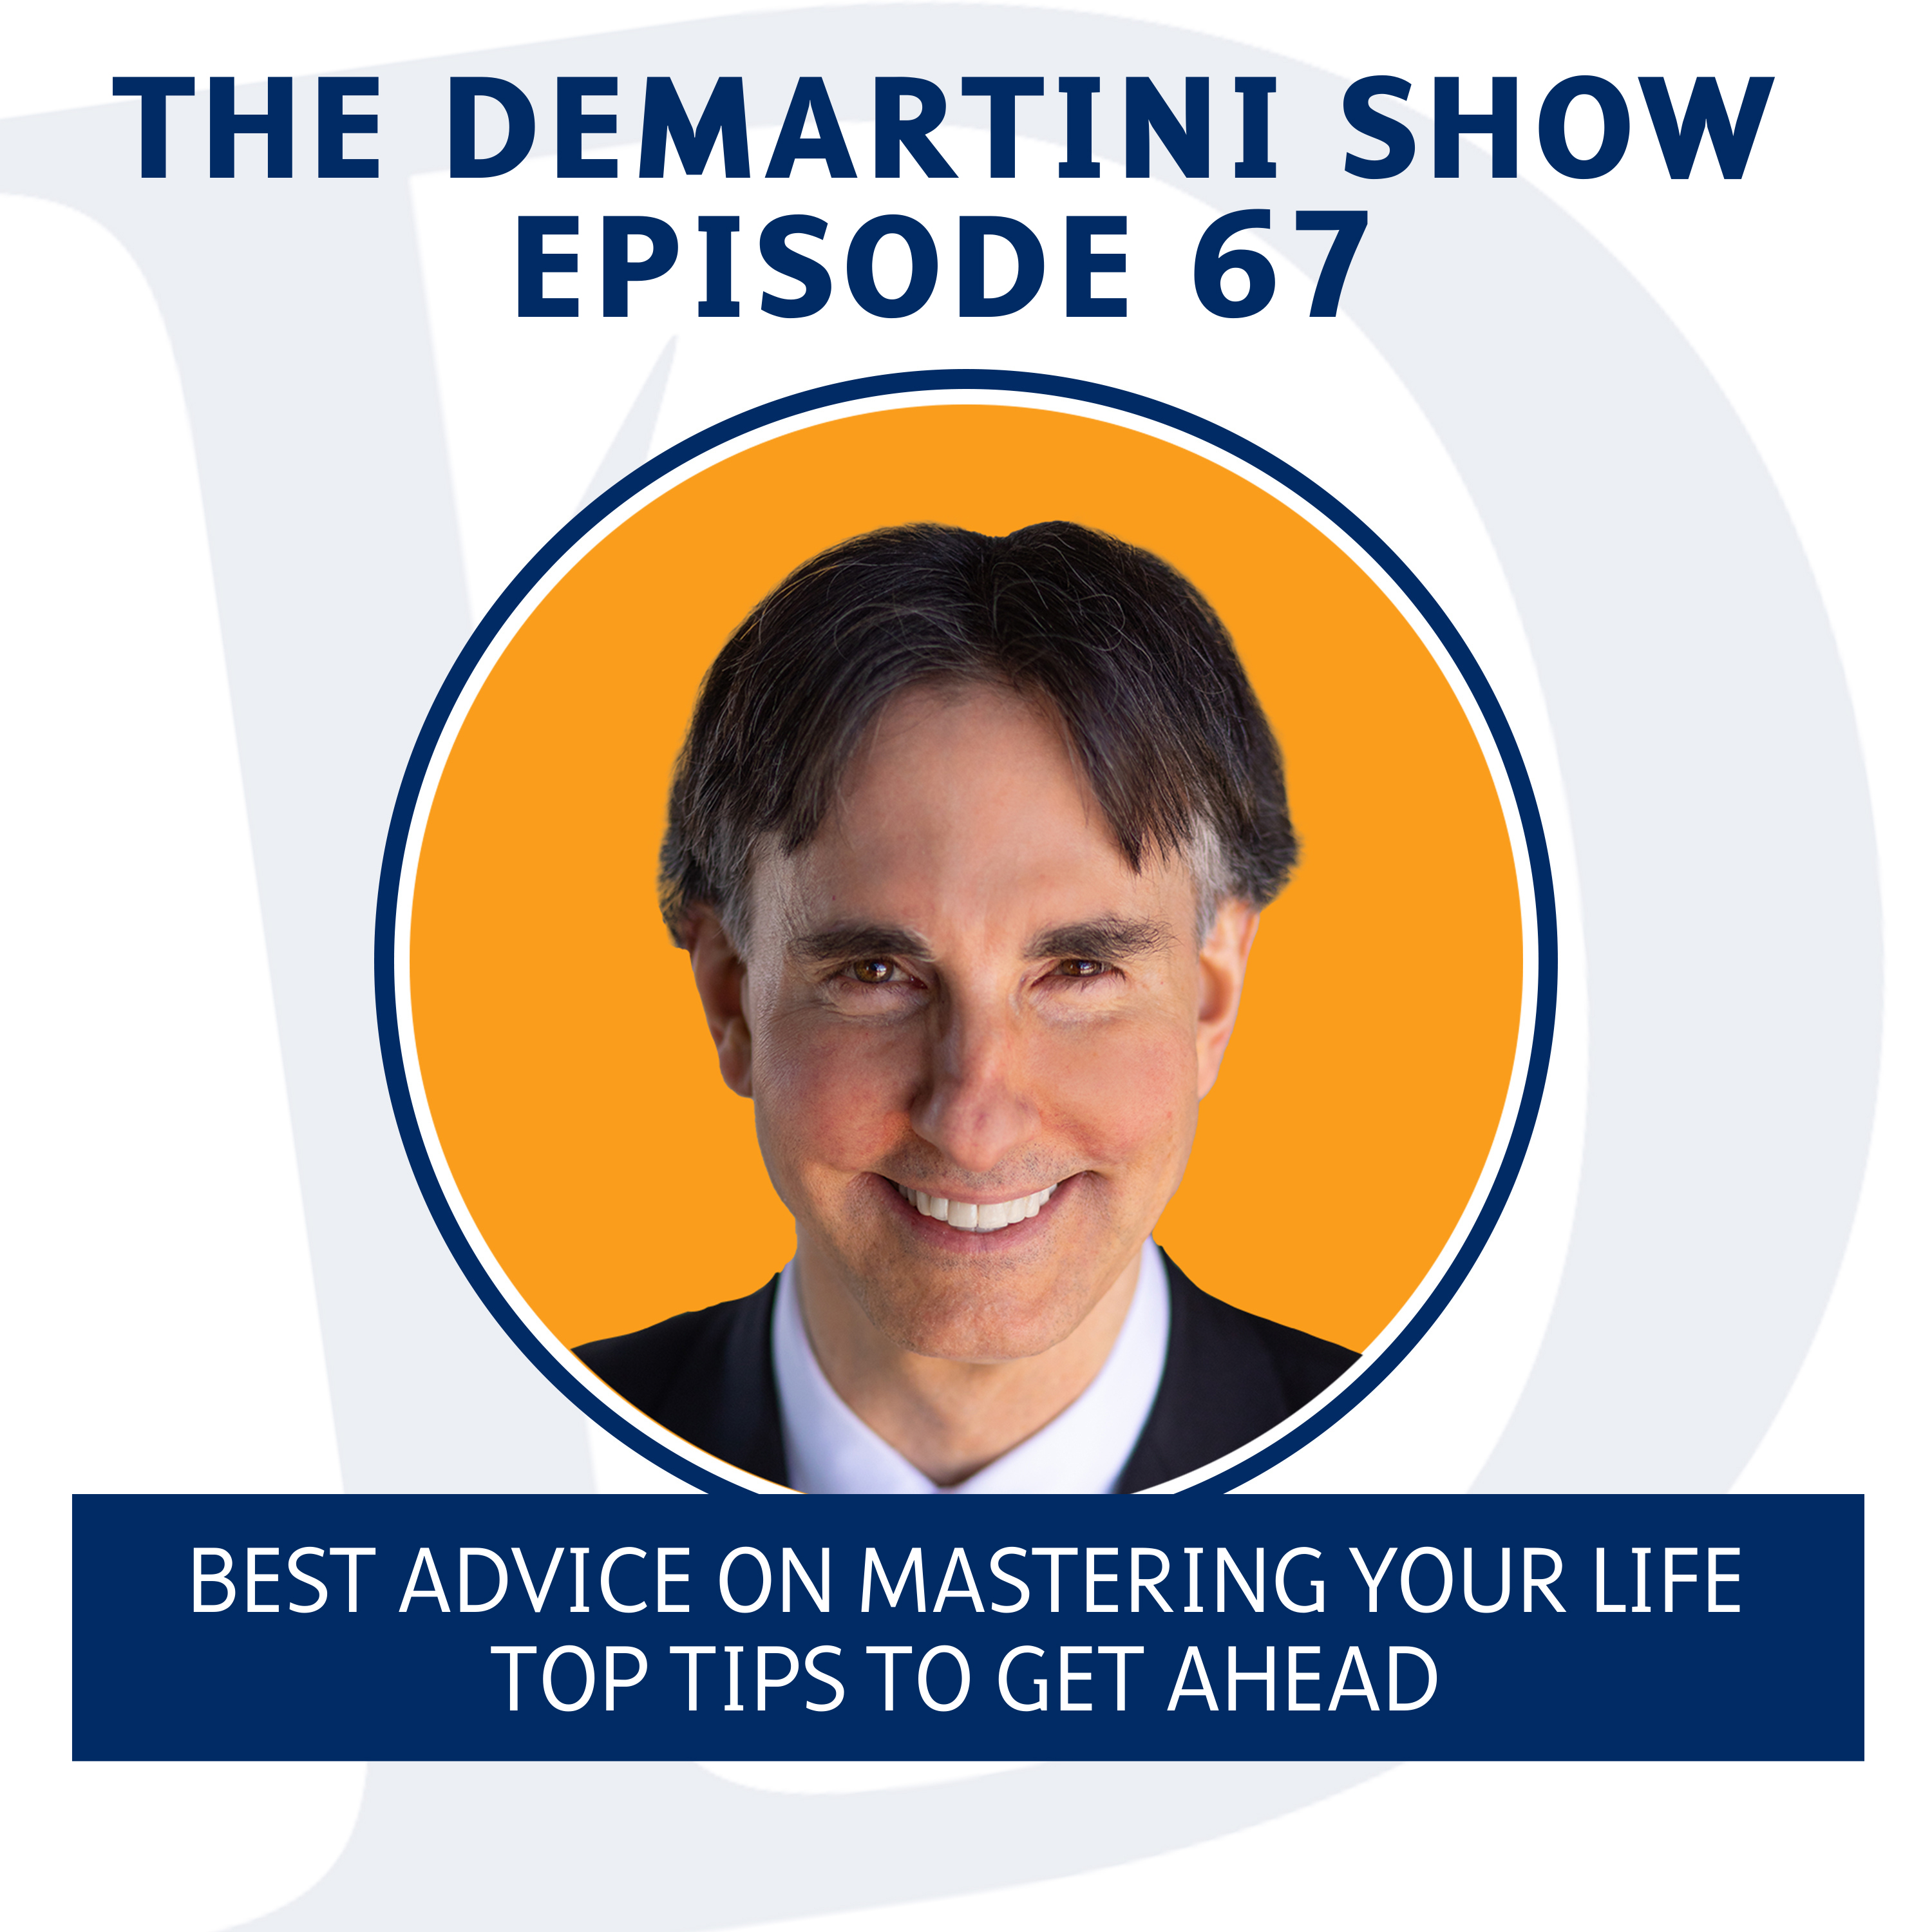 EP67 - Best Advice on Mastering Your Life - Top Tips to Get Ahead - The Demartini Show